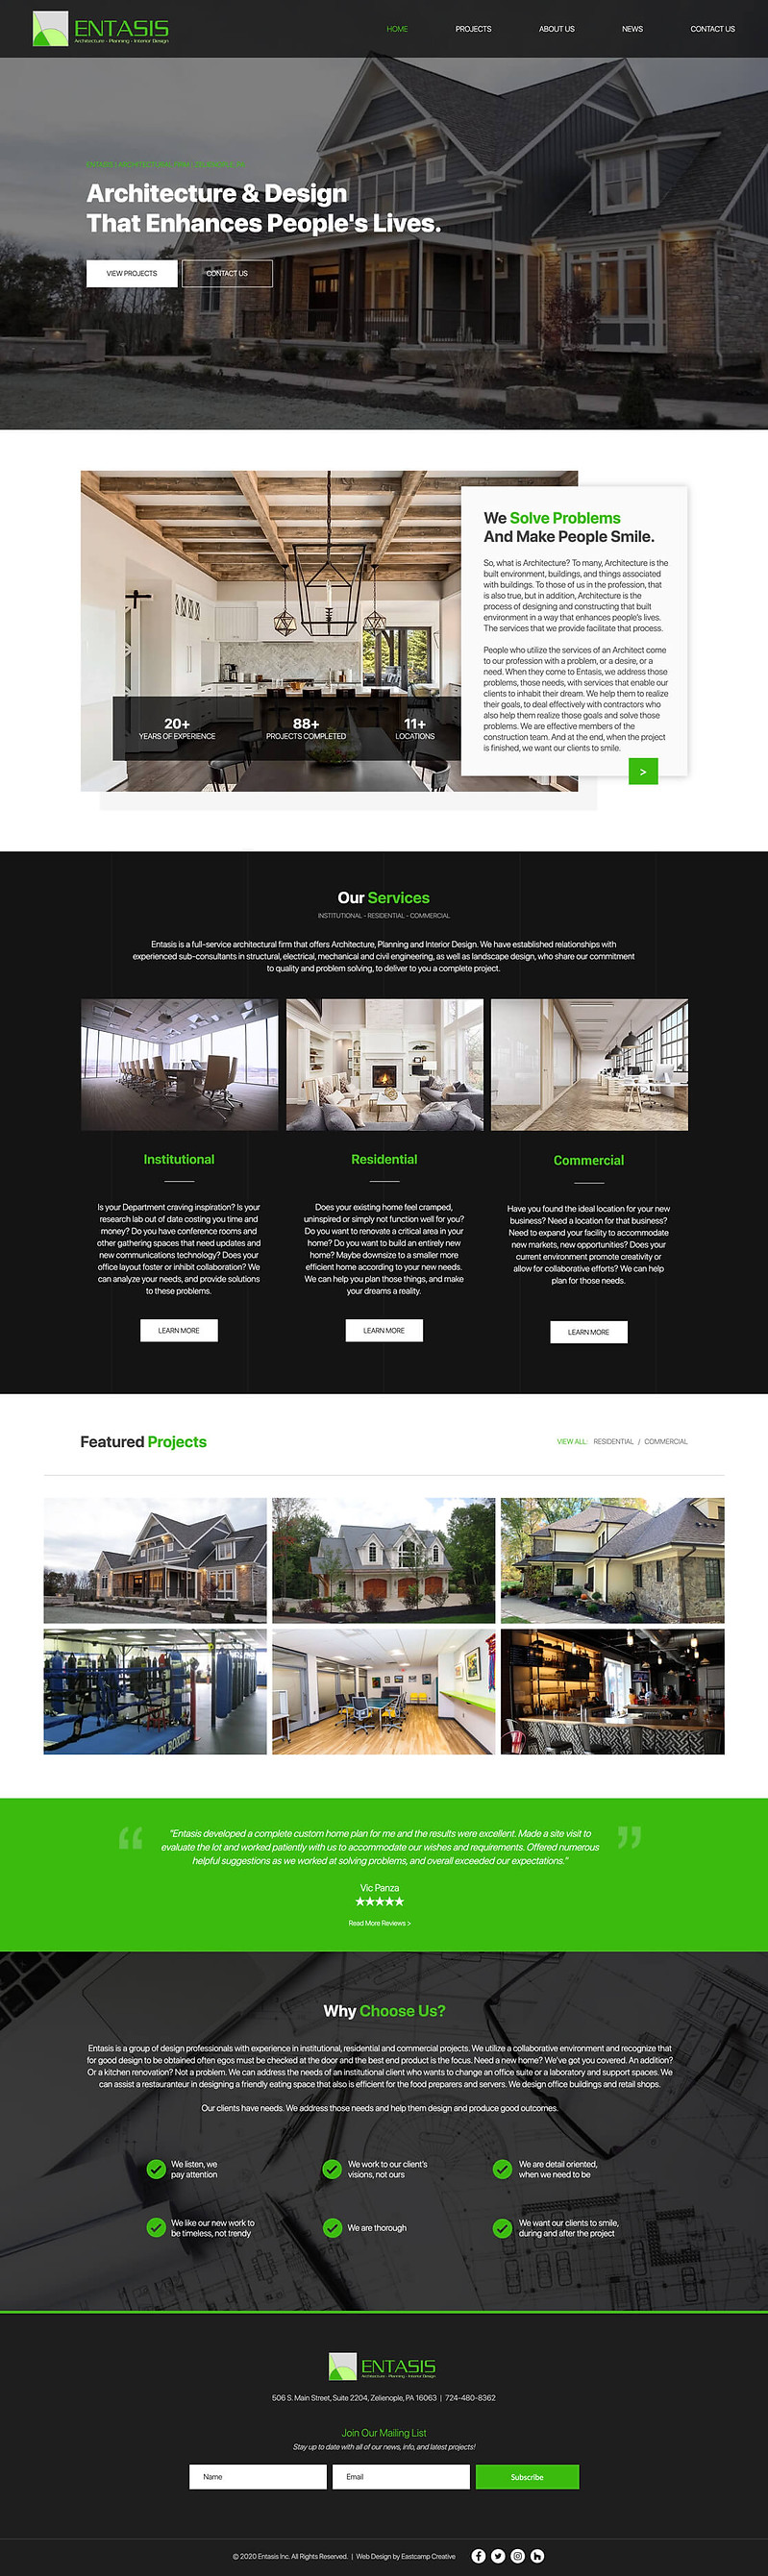 entasis architecture website design and development